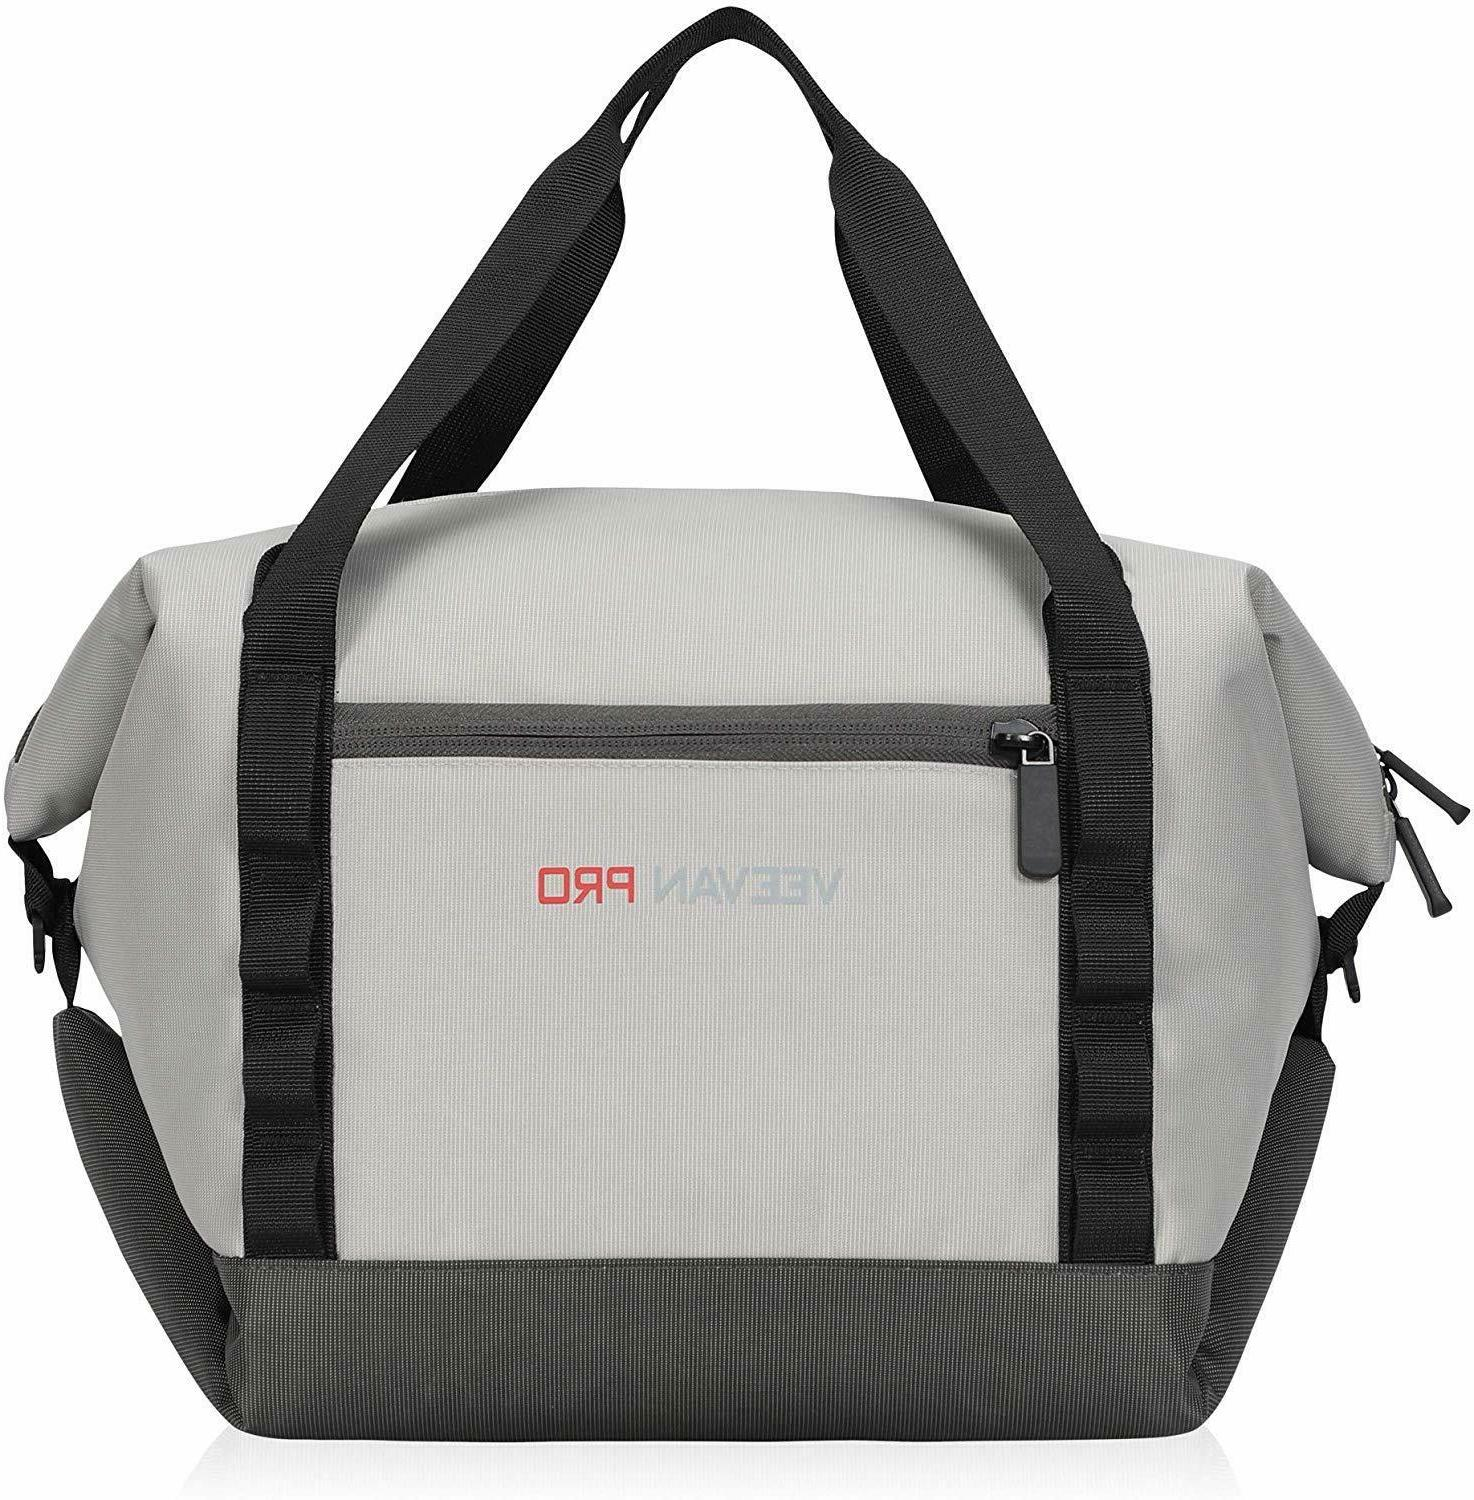 Veevanpro Bag Insulated Tote 19L Picnic 30